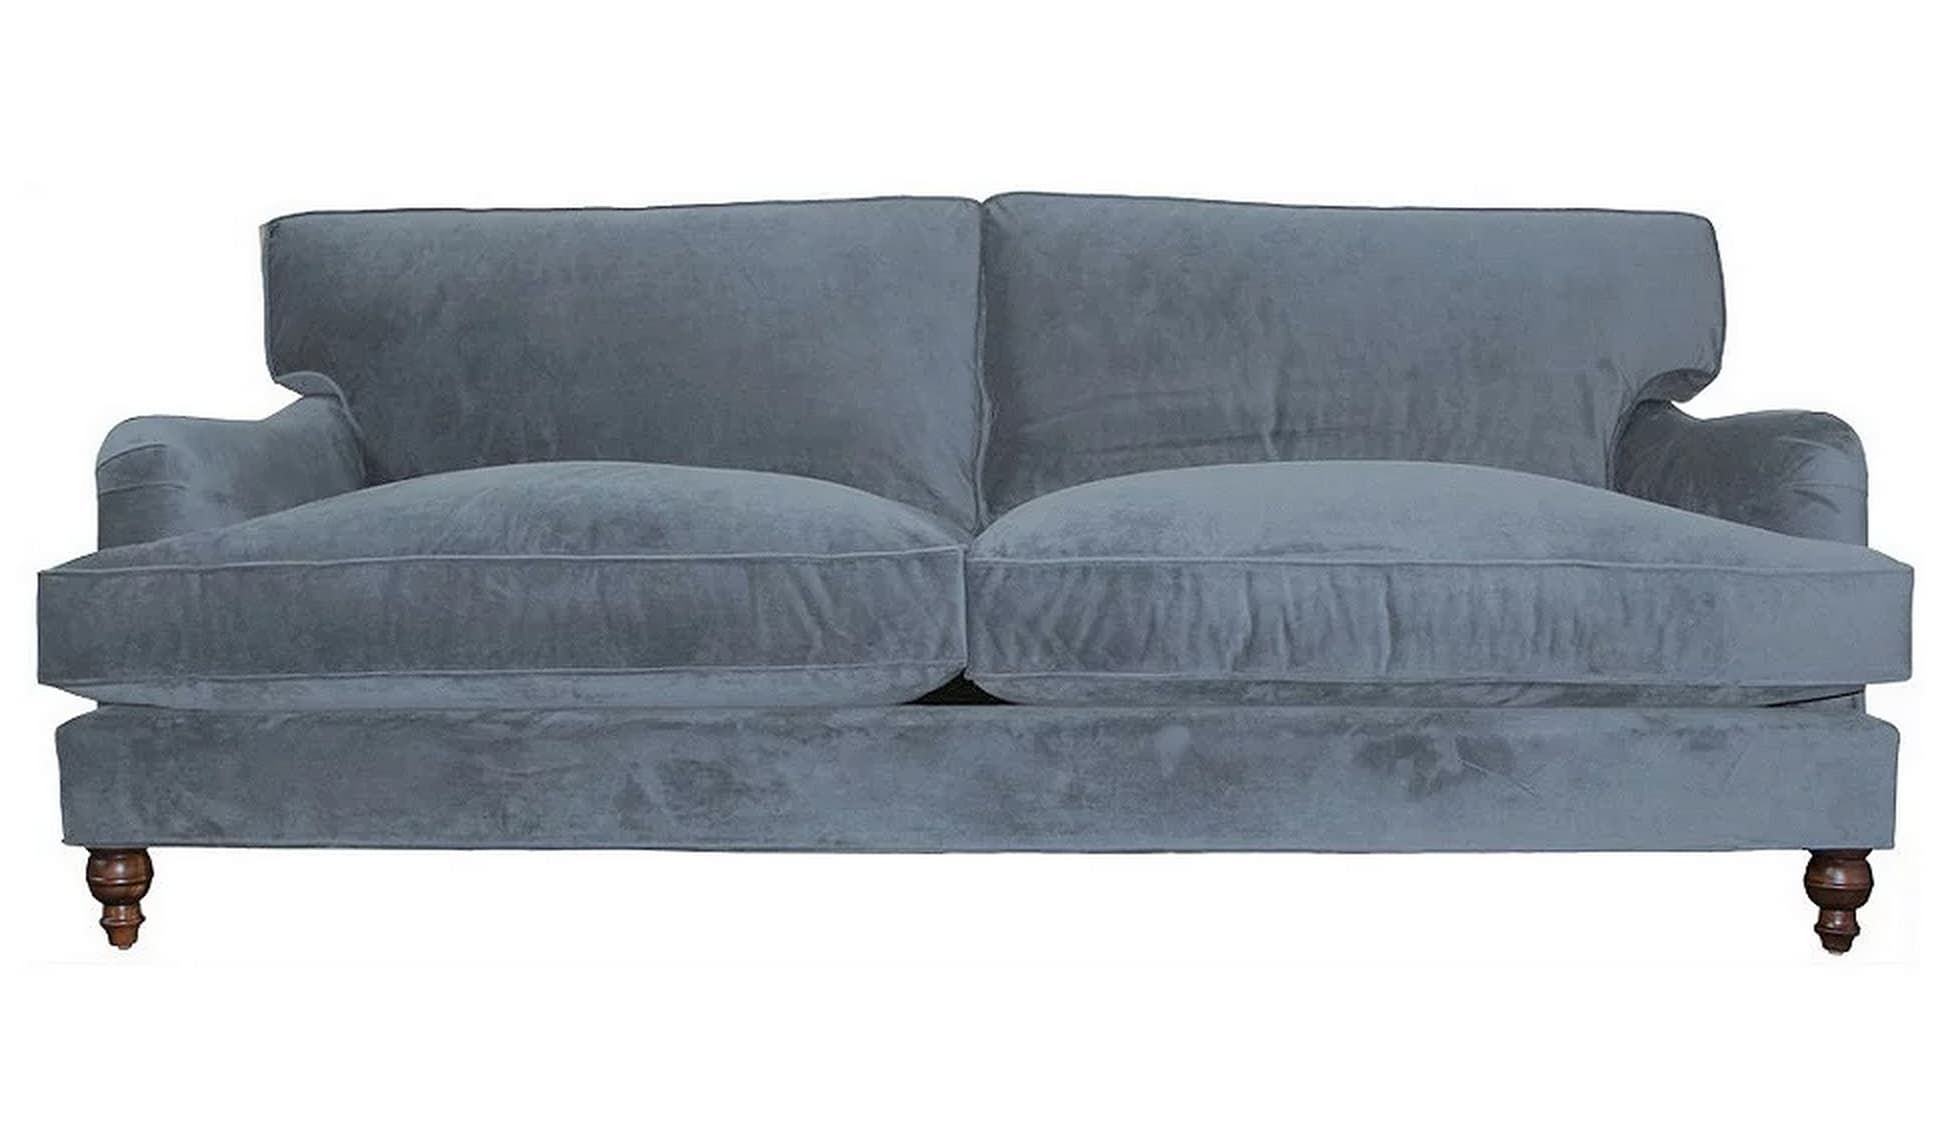 Overstuffed Armchairs For Sale Best English Roll Arm Sofas: George Sherlock, Bryght